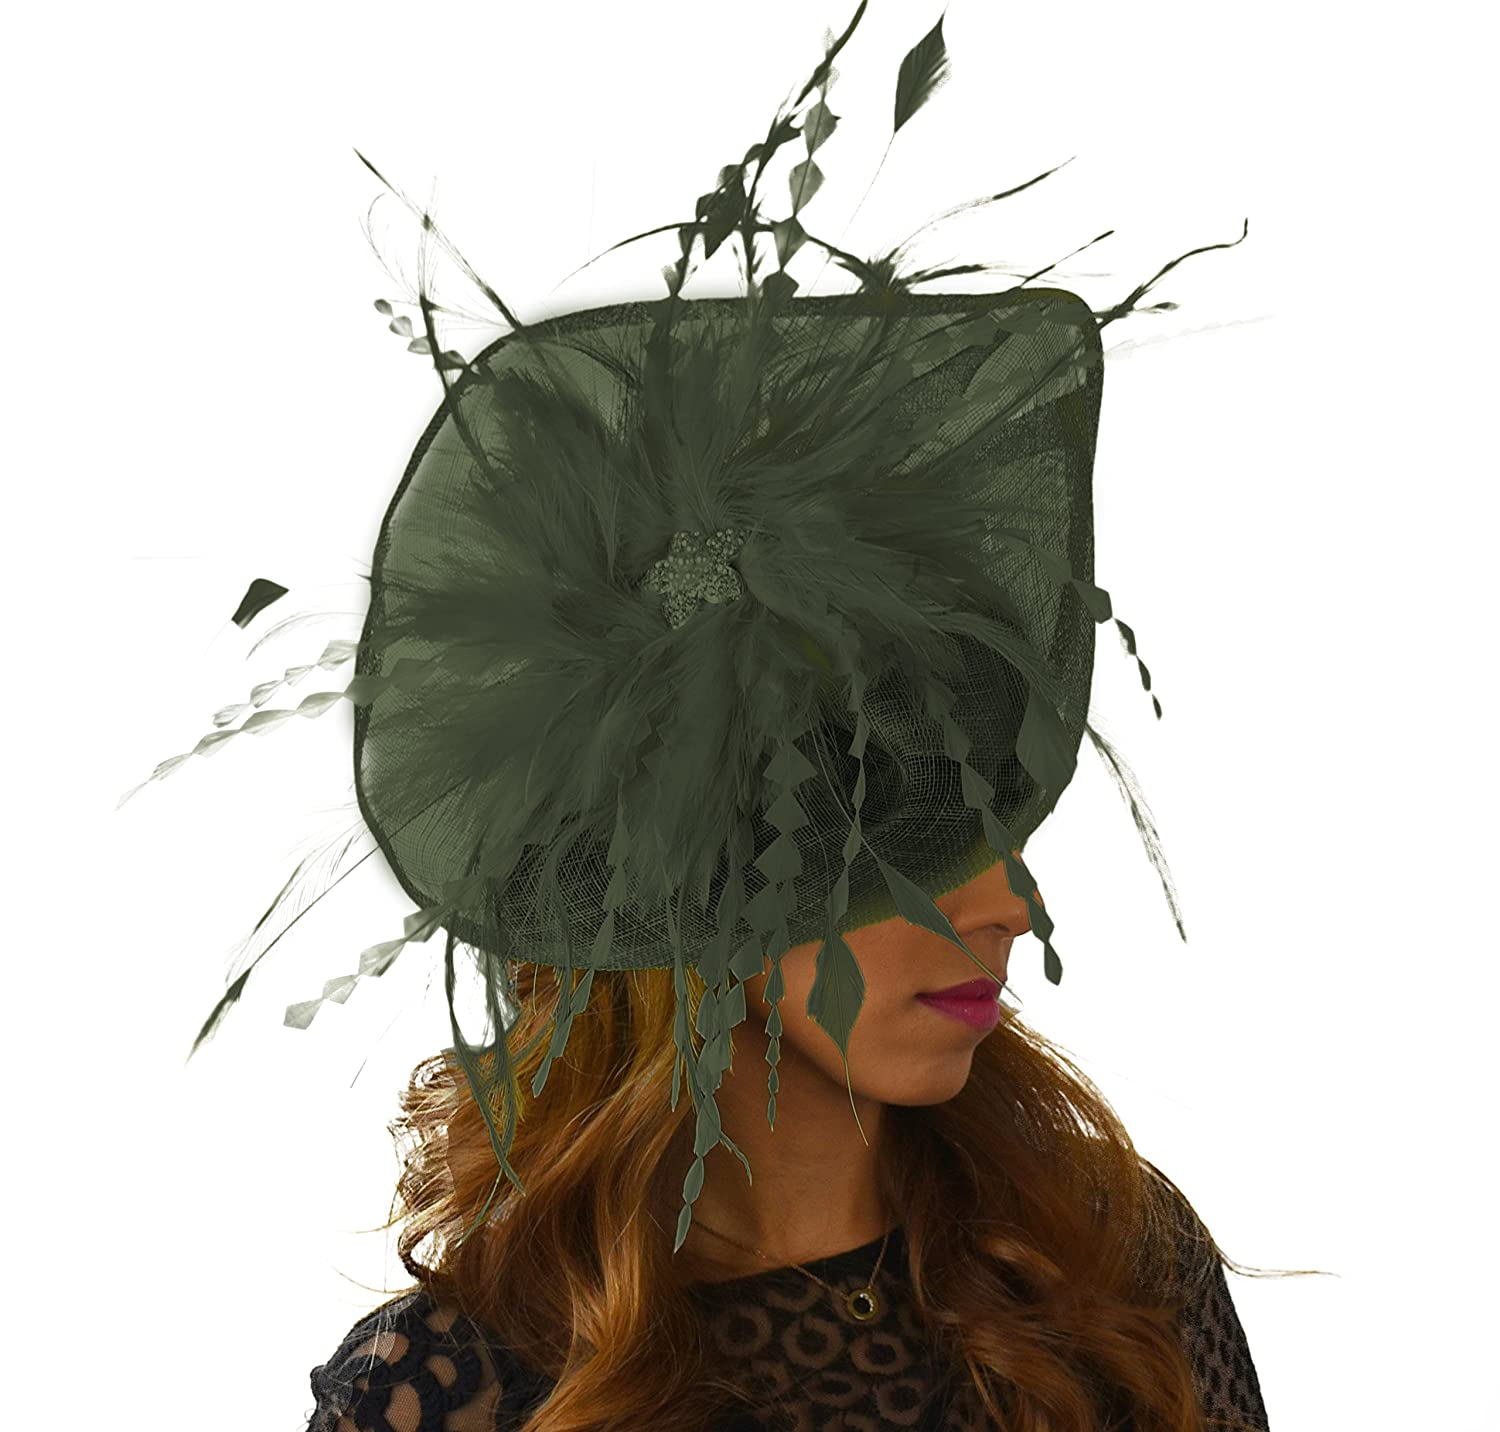 Hats By Cressida Pretty Petia Army Green Feathers Ascot Derby Fascinator Hat  - With Headband at Amazon Women s Clothing store  3c7daee0855c